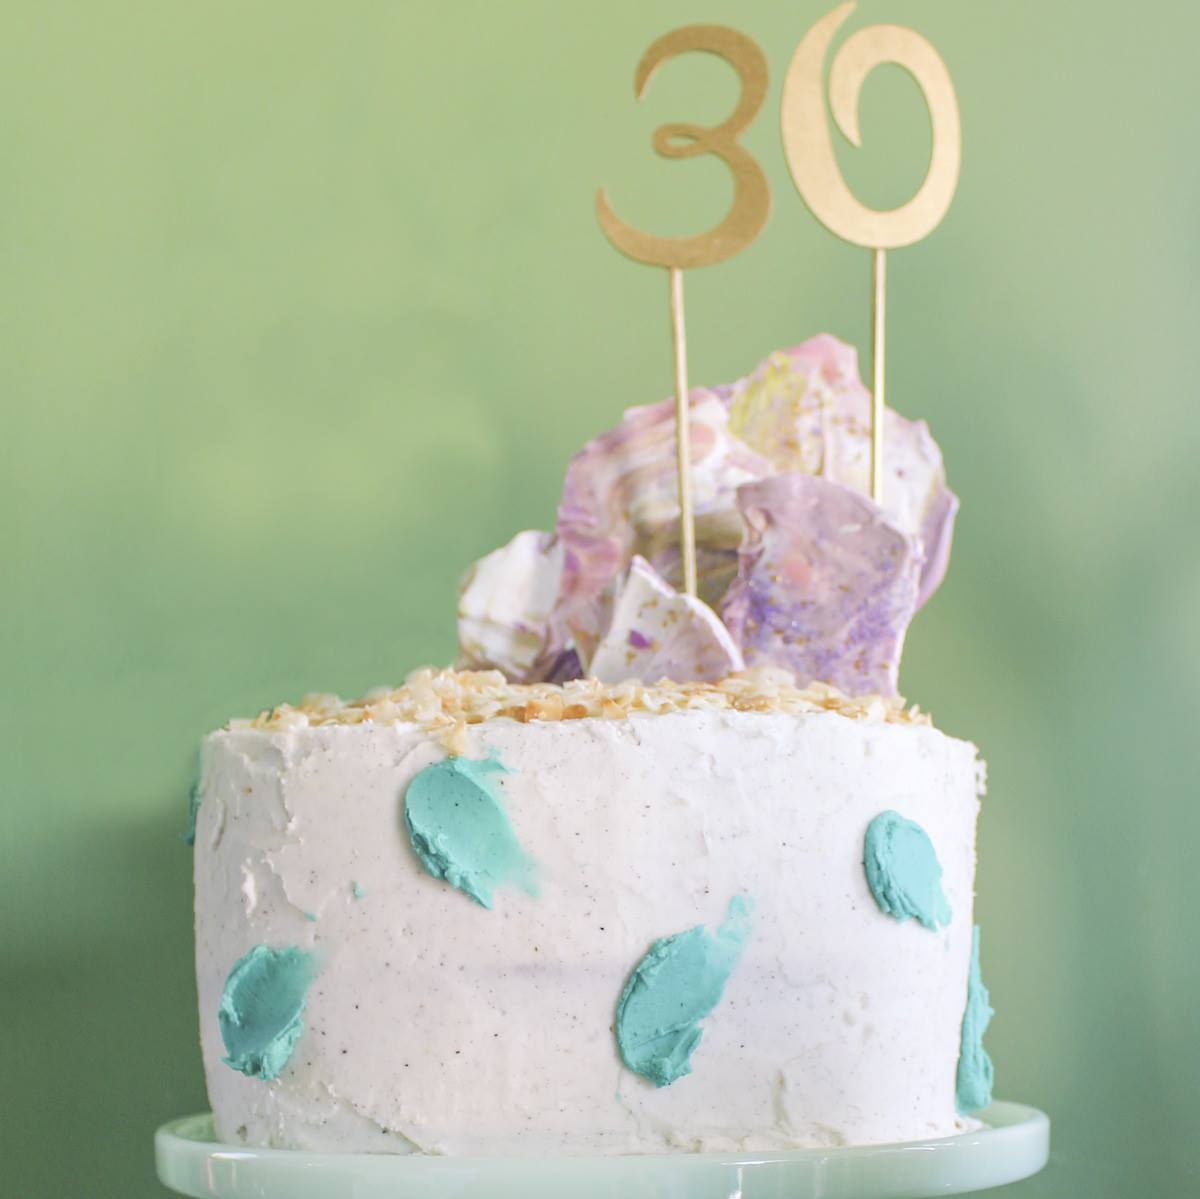 Coconut Passionfruit Birthday Cake